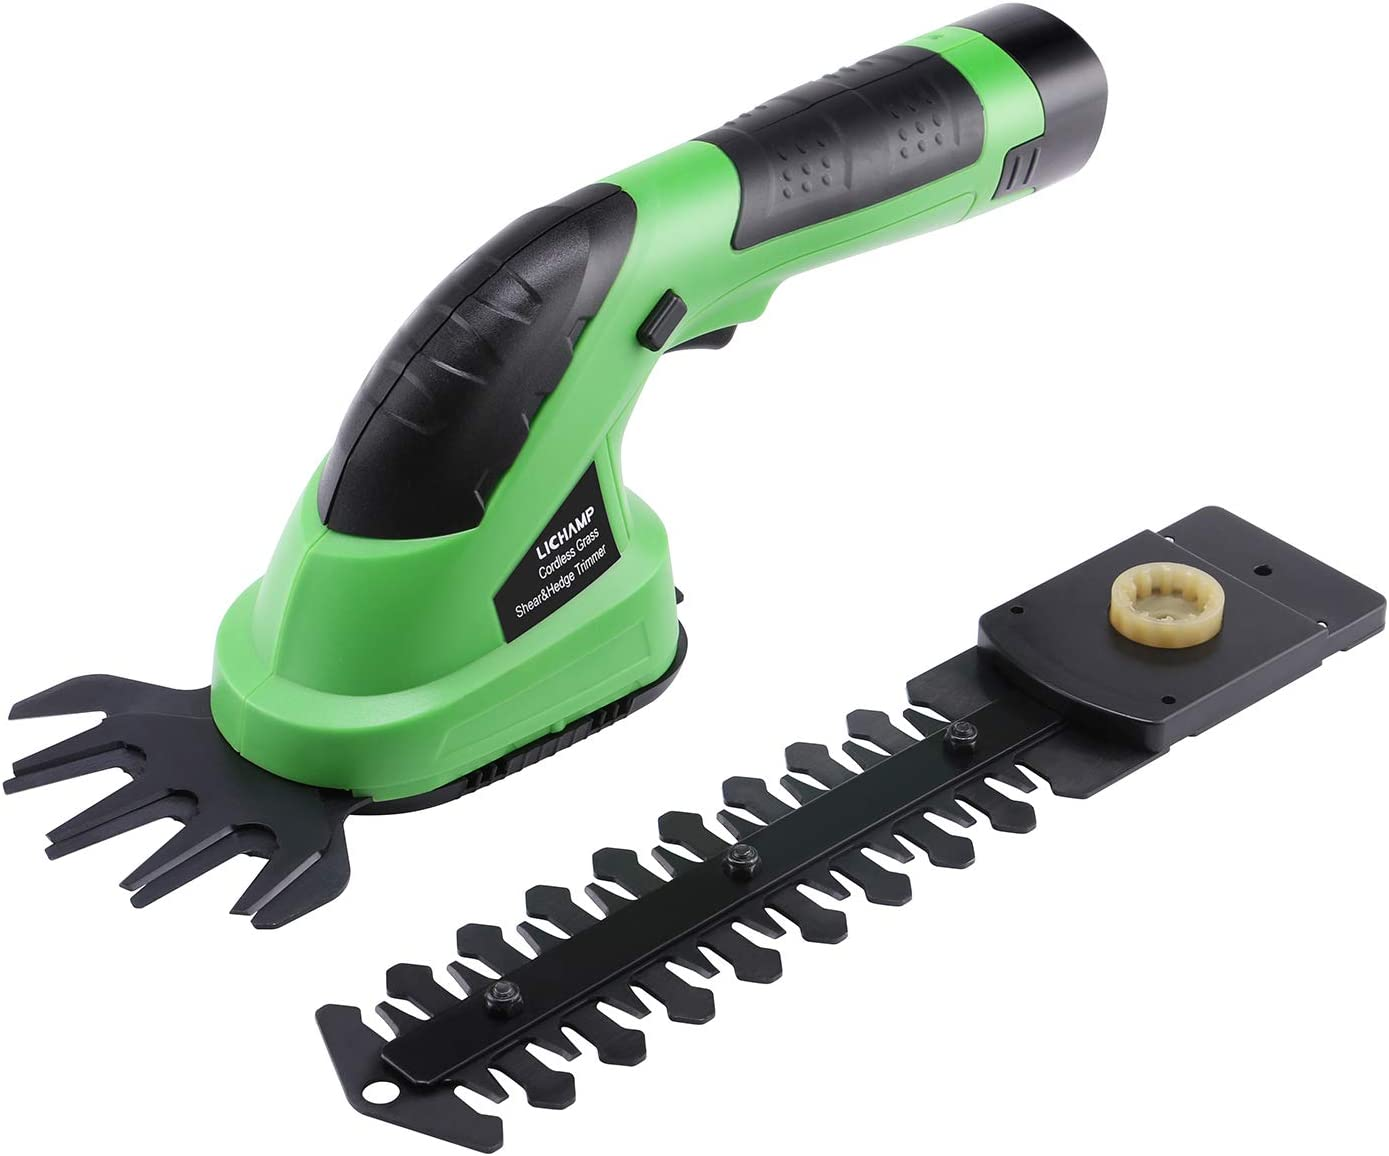 Lichamp 2-in-1 Electric Hand Held Grass Shear Hedge Trimmer Shrubbery Clipper Cordless Battery Powered Rechargeable for Garden and Lawn, CGS-7201 7.2V Grass Green